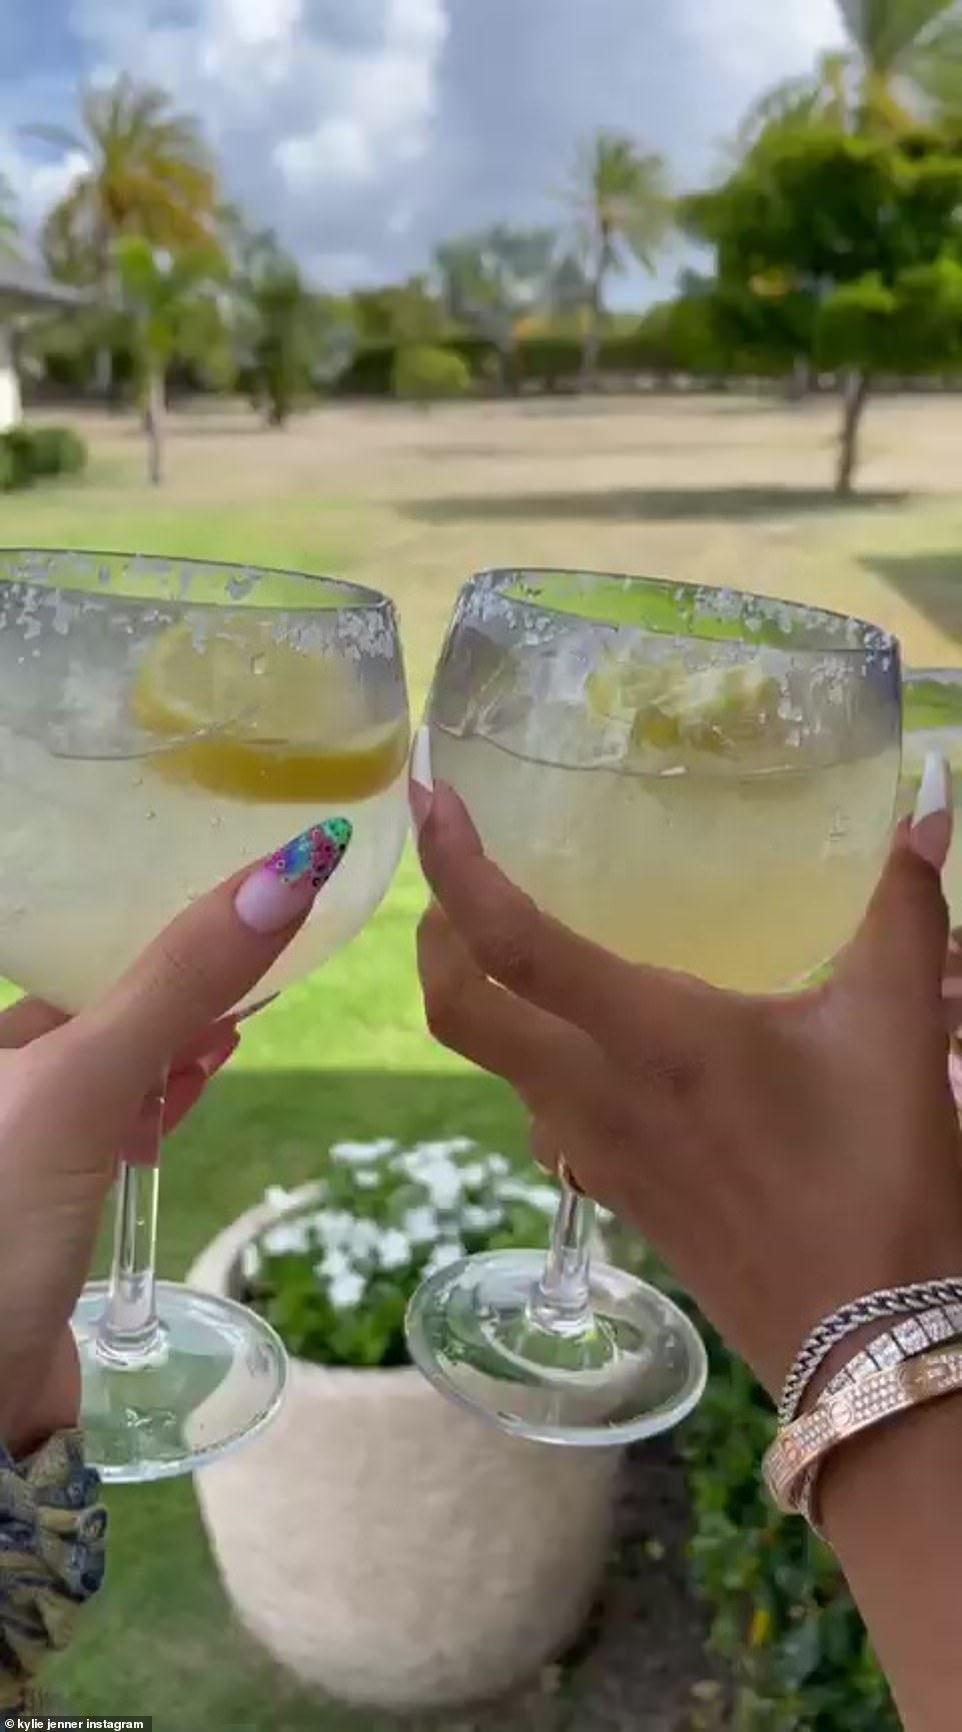 Cheers to us: The star, who is showing off her Cartier bracelets, cheered her tequila drink with her pretty pal